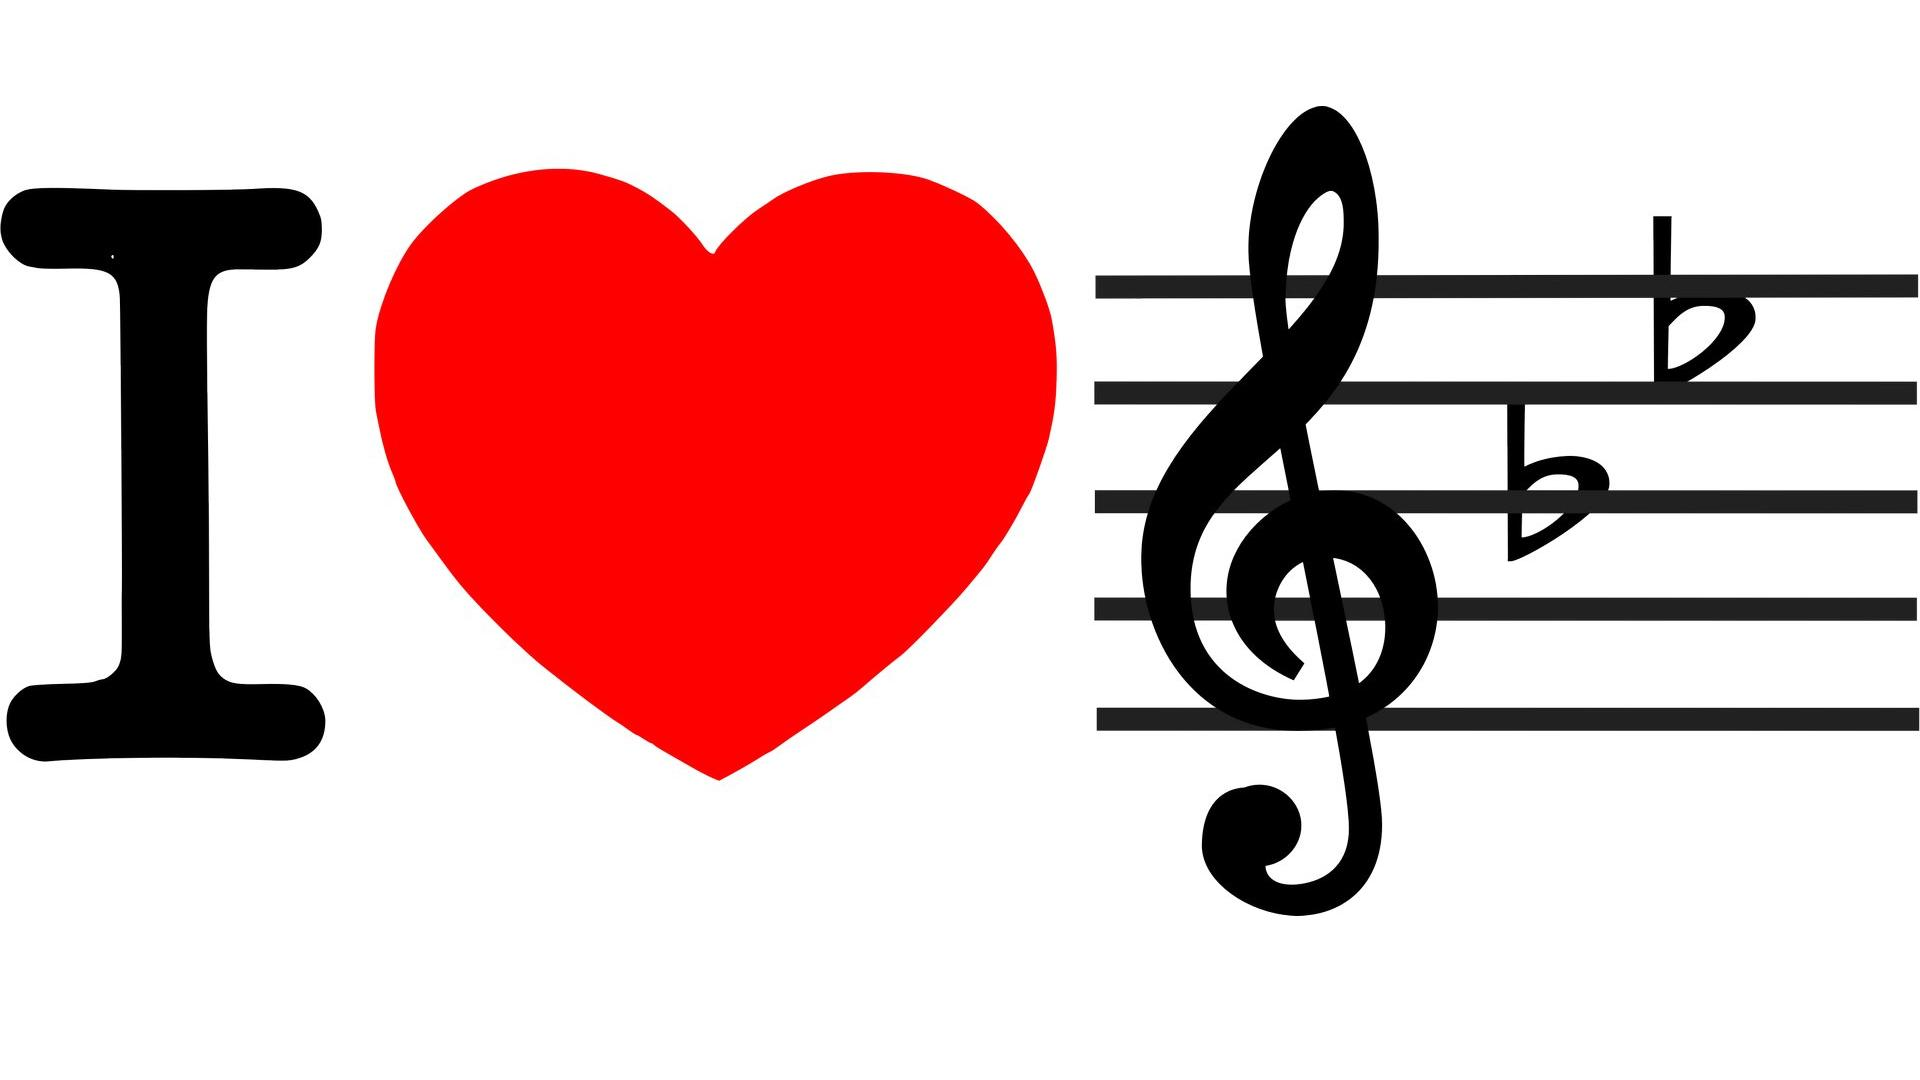 I love music 1920x1080. Tapeta, wallpaper, obrazek zdarma ke sta?eni